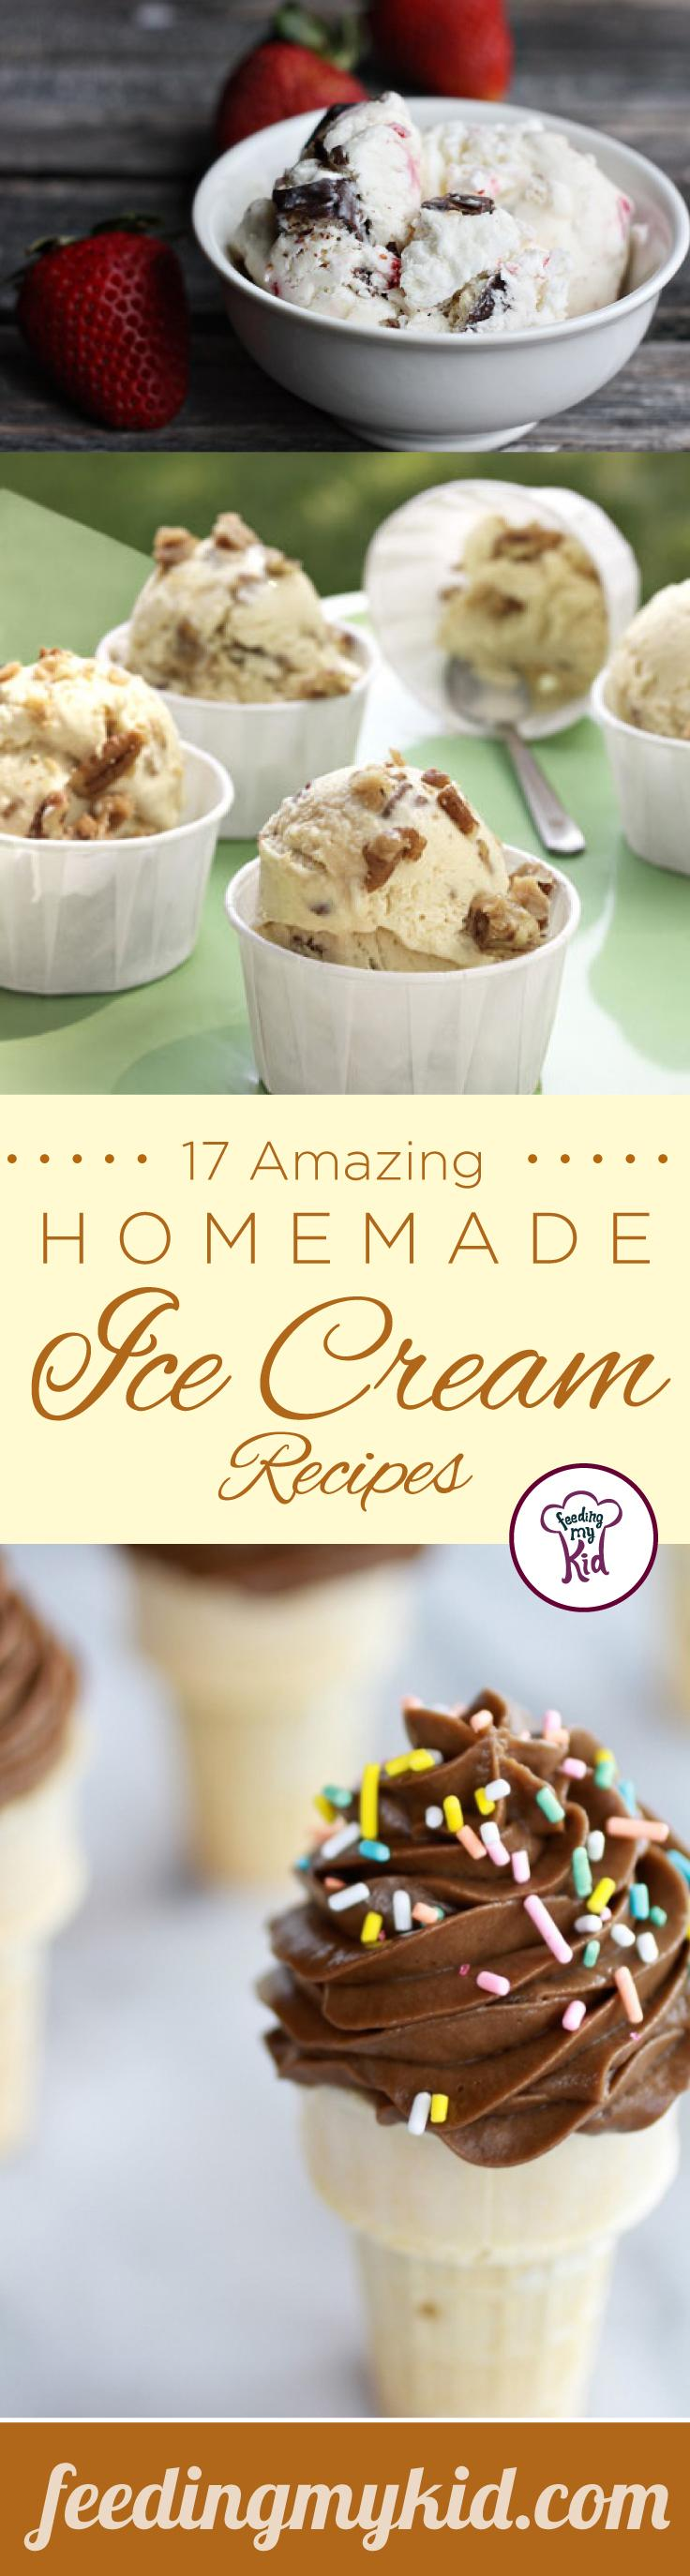 17 Amazing Homemade Ice Cream Recipes - There's nothing like making your own ice cream at home. It's the best way to make sure that what you and your kids eat isn't too bad. These recipes are a perfect treat for everyone!